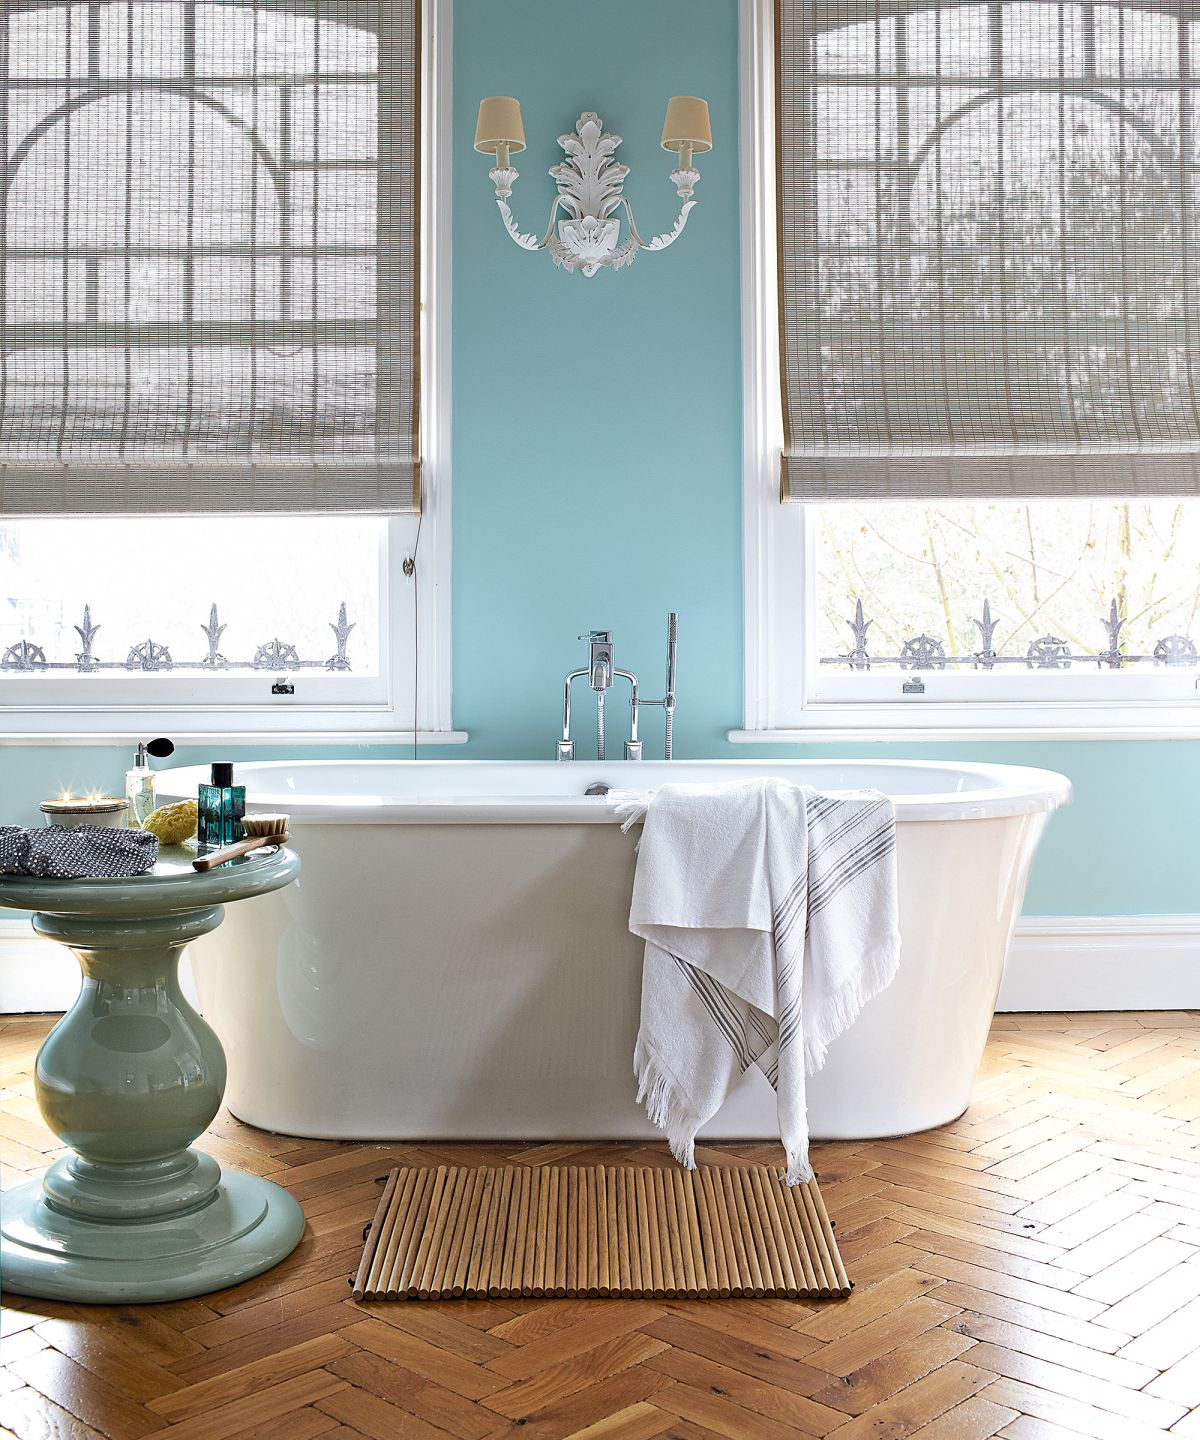 Painting your bathroom this color will add thousands to the value of your home – but choose the shade carefully